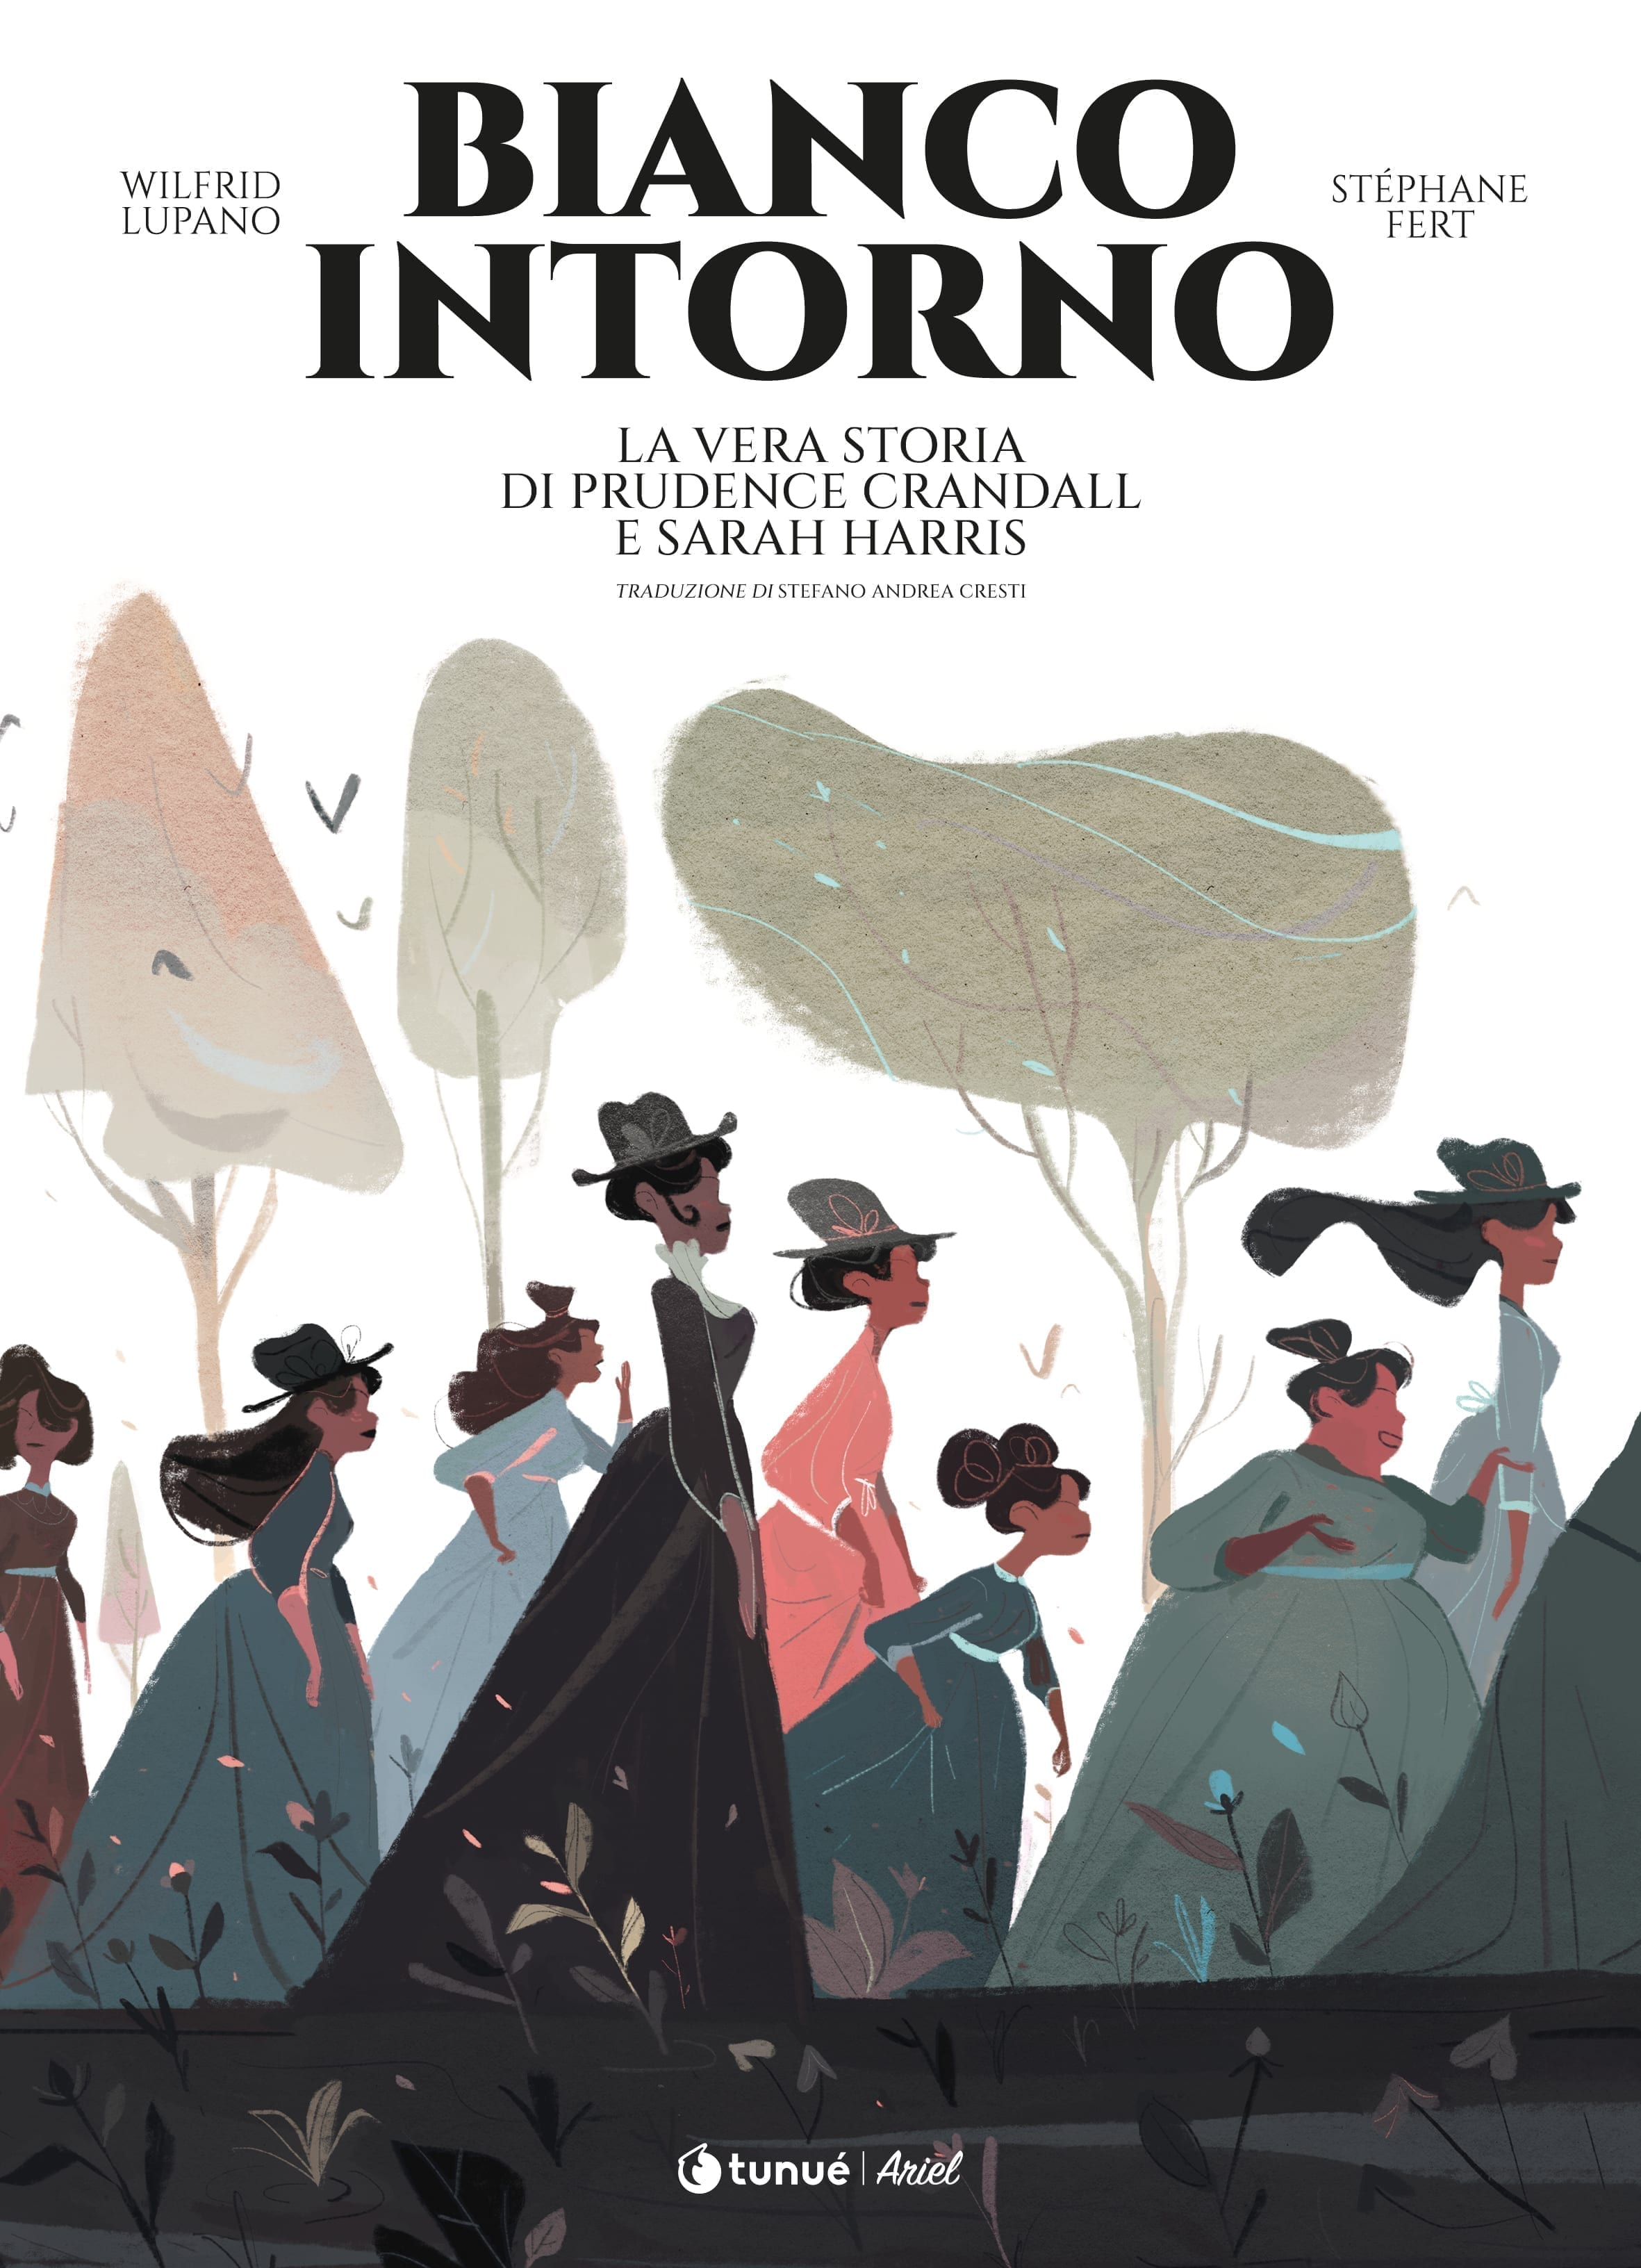 Bianco Intorno Cover Wilfrid Lupano Stéphane Fert